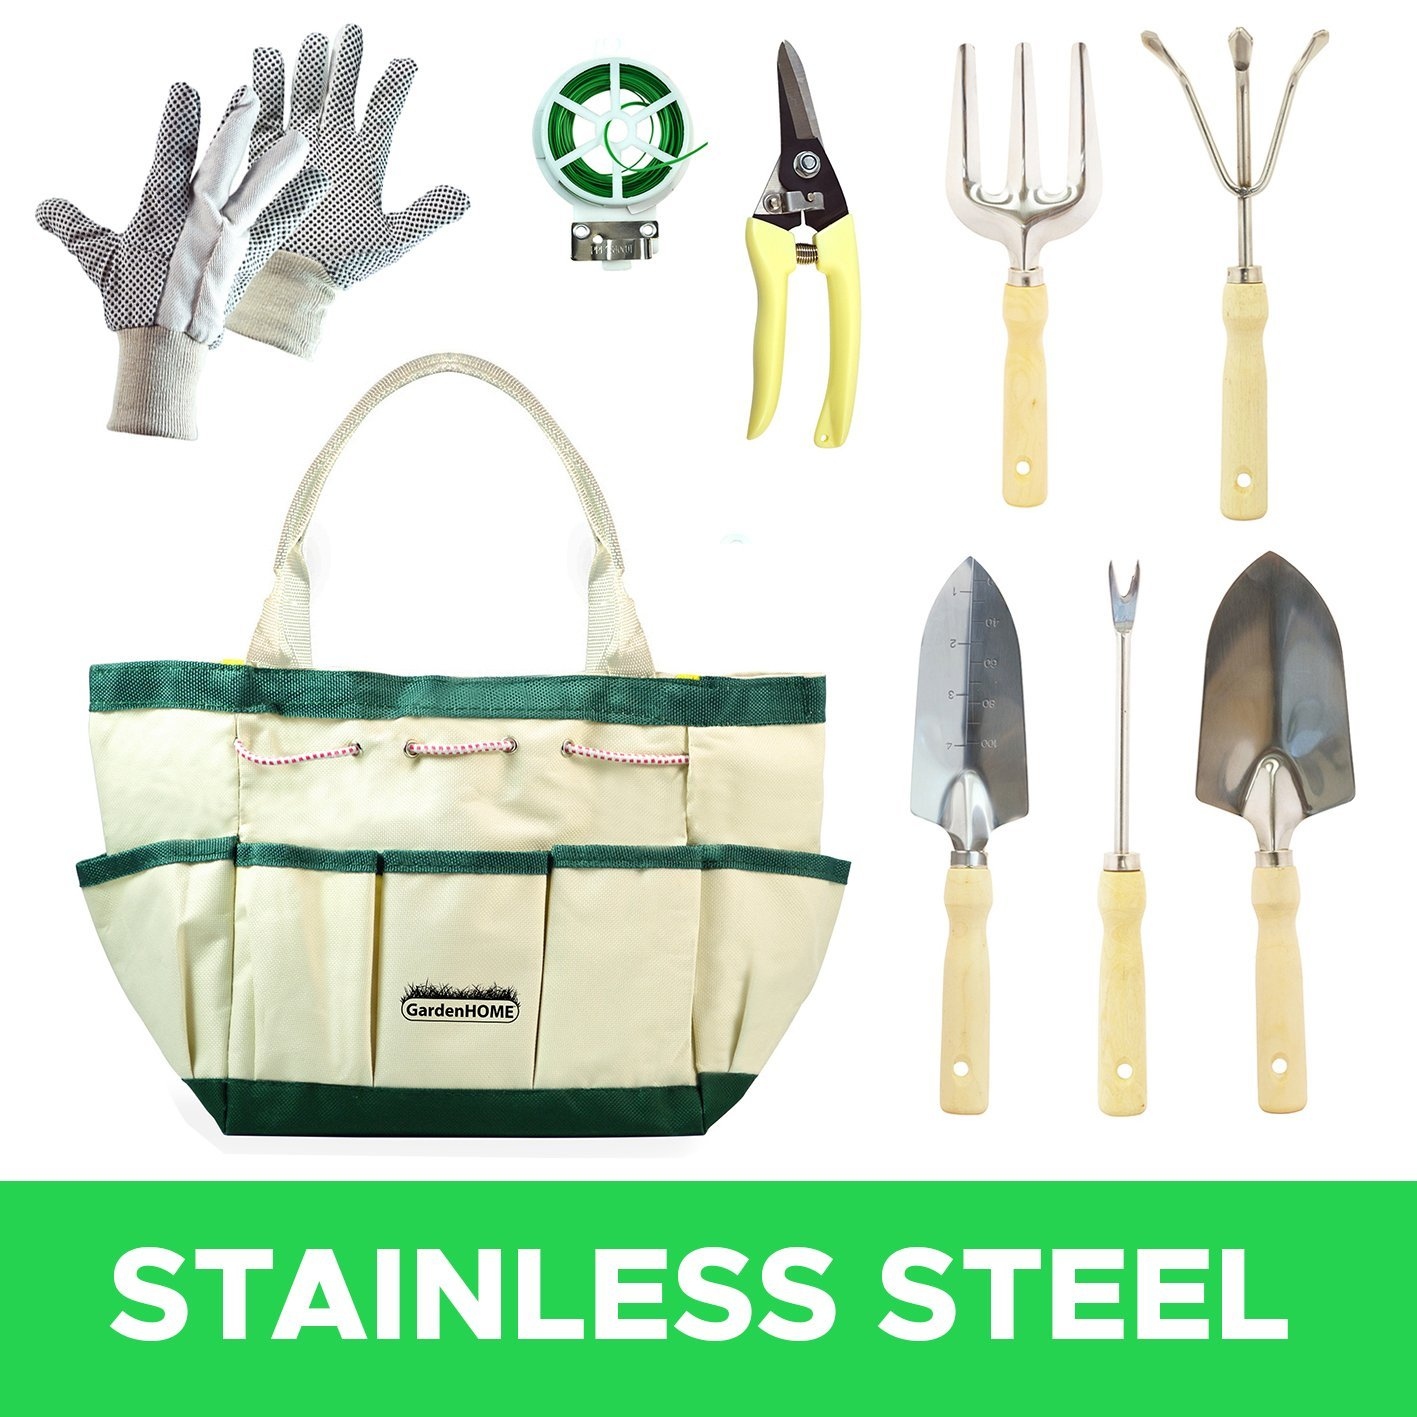 GardenHOME 9 Piece Garden Tools With Canvas Storage Tool Set Tote And  Gardening Gloves